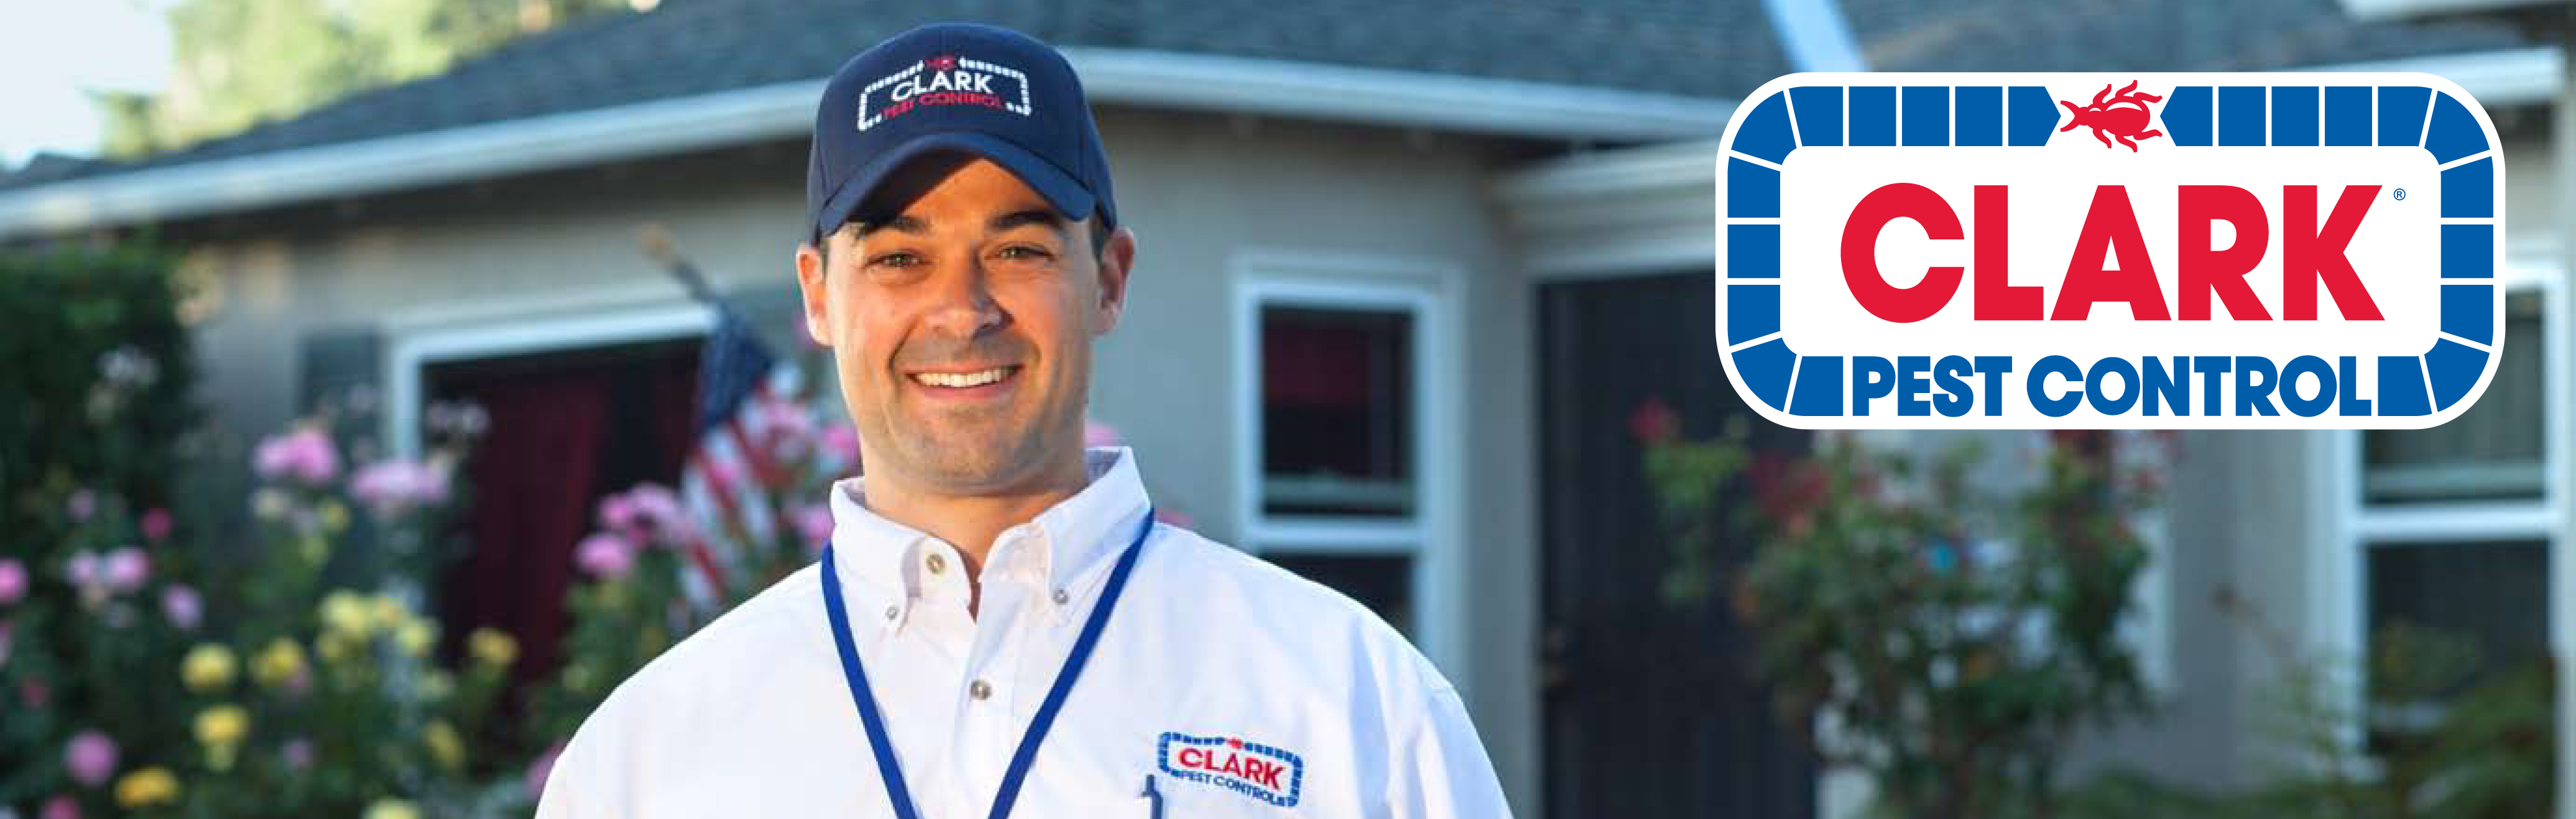 Clark Pest Control reviews | Home & Garden at 4045 Nelson Ave - Concord CA